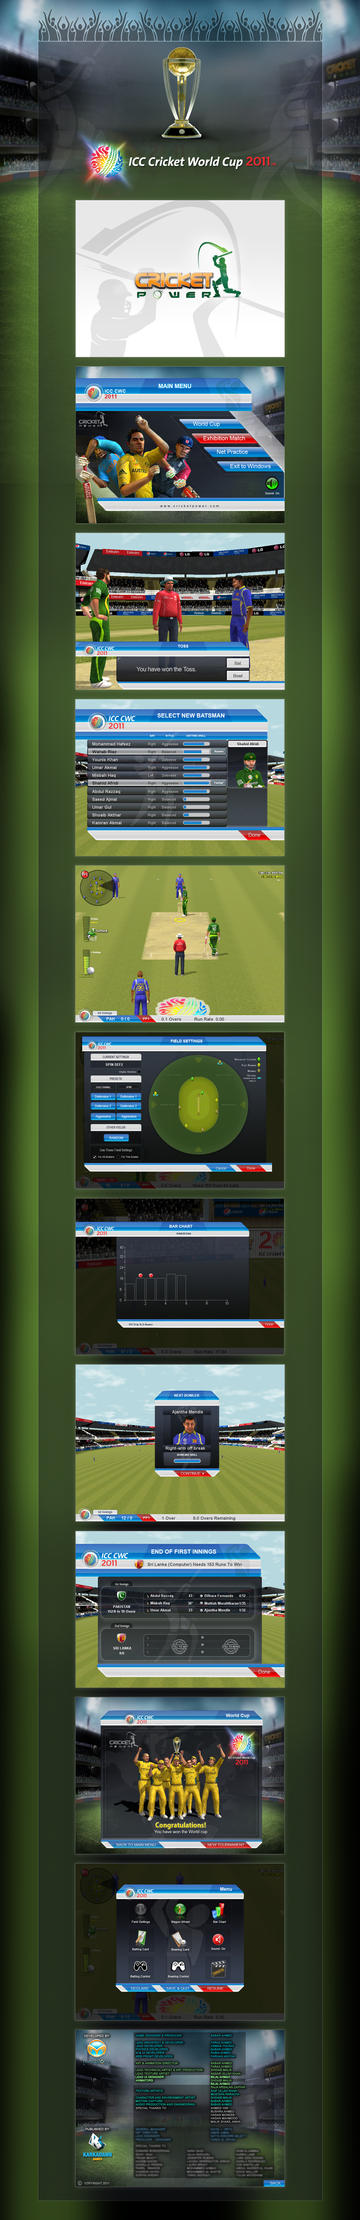 ICC World Cup Game Interface by workstation